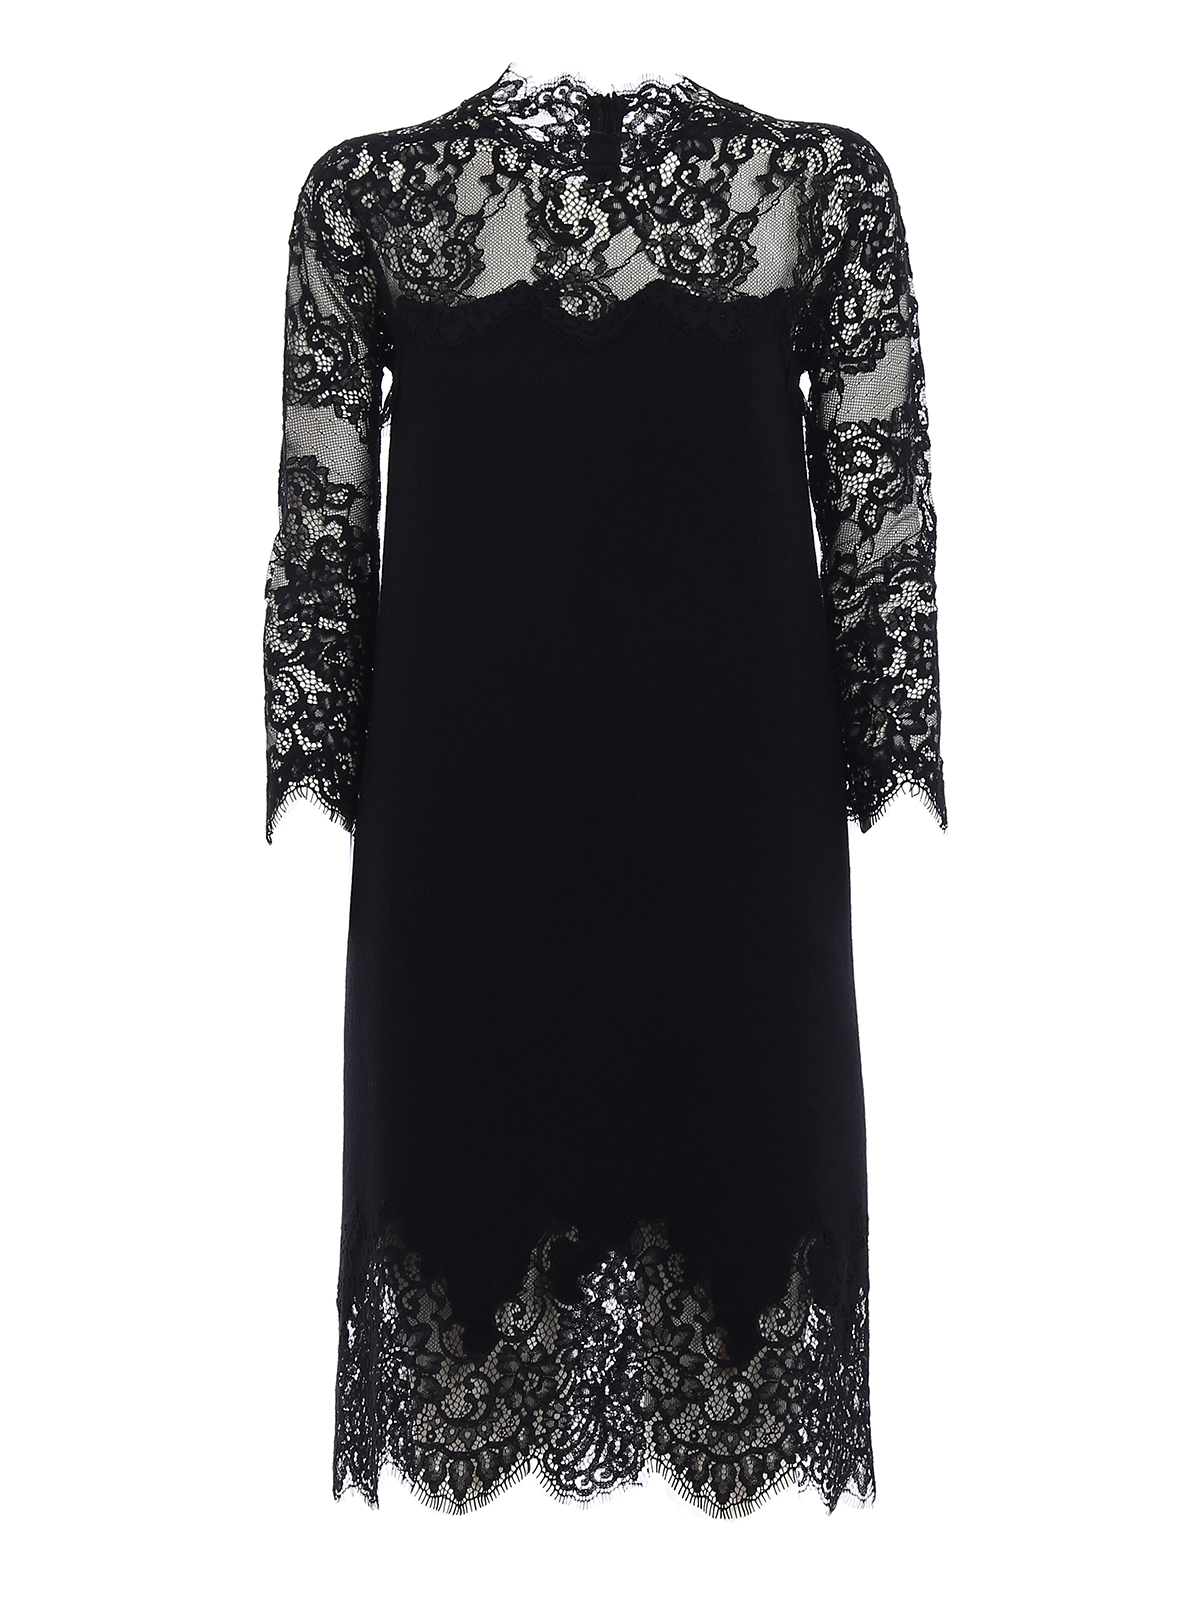 322a77ec7d60 Ermanno Scervino - Bon ton lace pashmina dress - cocktail dresses ...